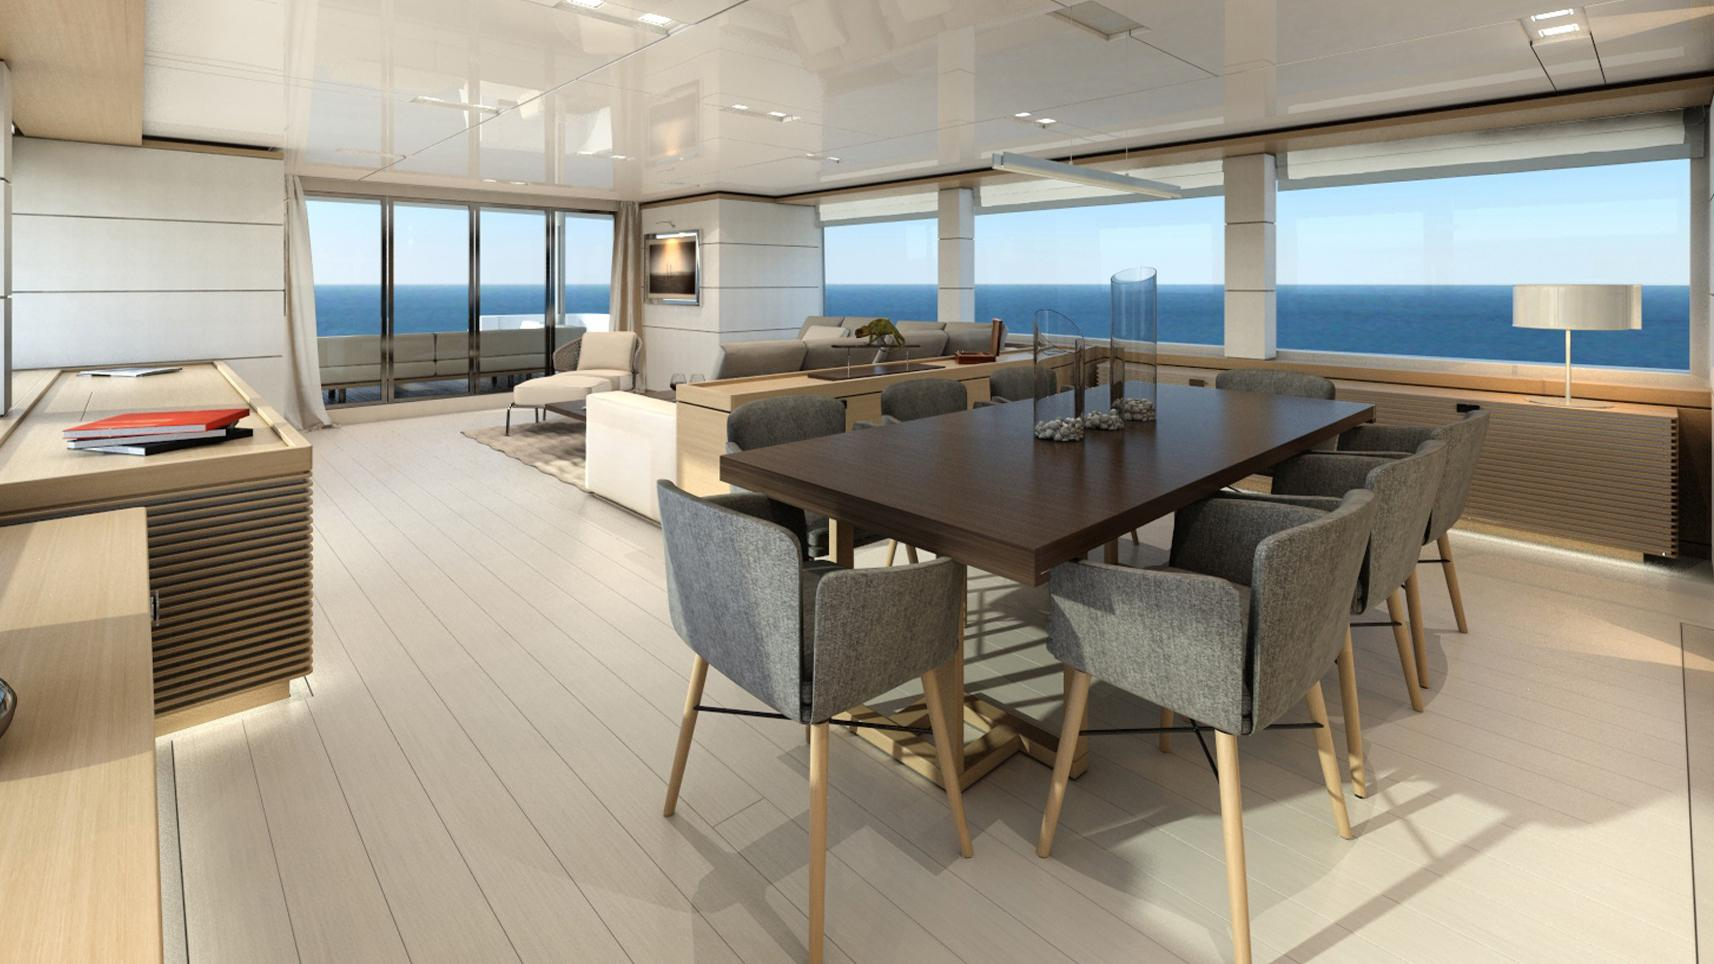 narvalo-motor-yacht-cantiere-delle-marche-2016-31m-nauta-air-108-dining-saloon